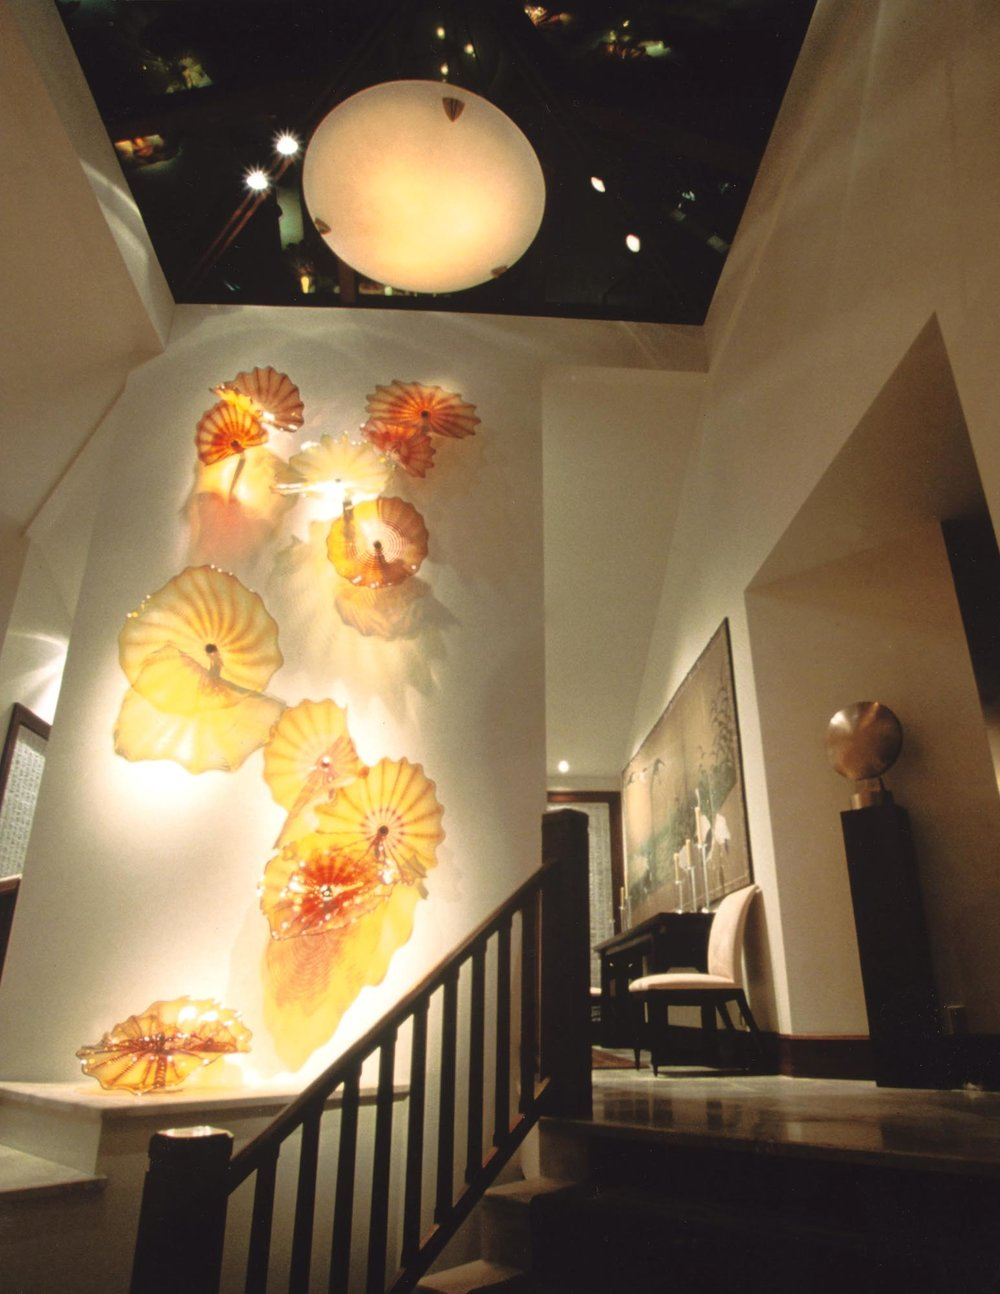 House staircase with illuminating wall design